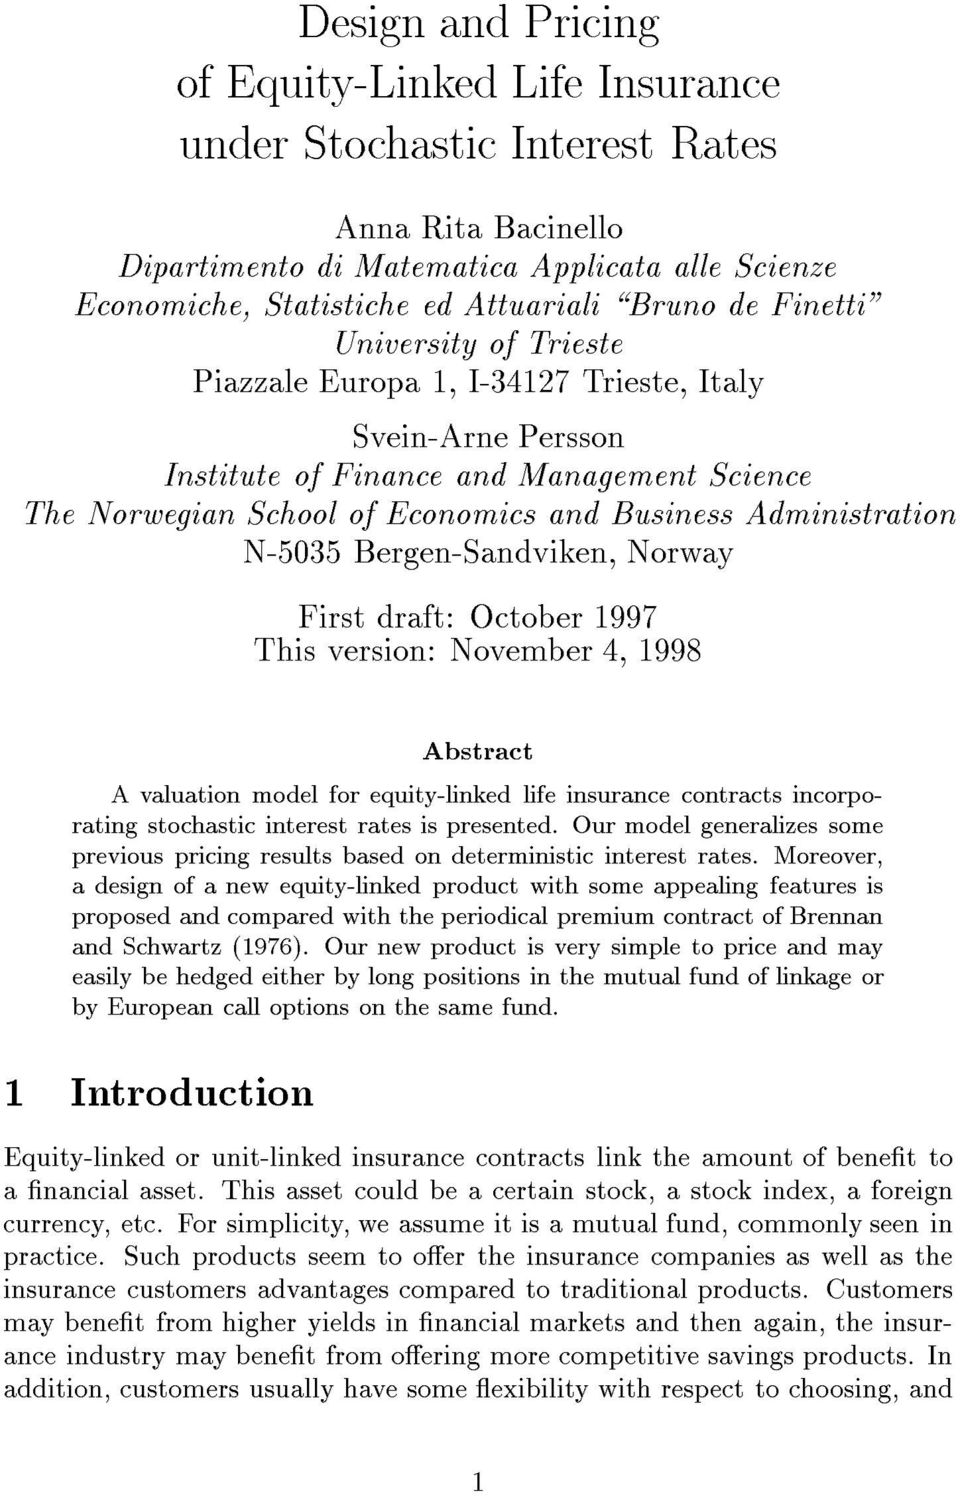 Administration N-5035 Bergen-Sandviken, Norway First draft: October 1997 This version: November 4, 1998 Abstract A valuation model for equity-linked life insurance contracts incorporating stochastic